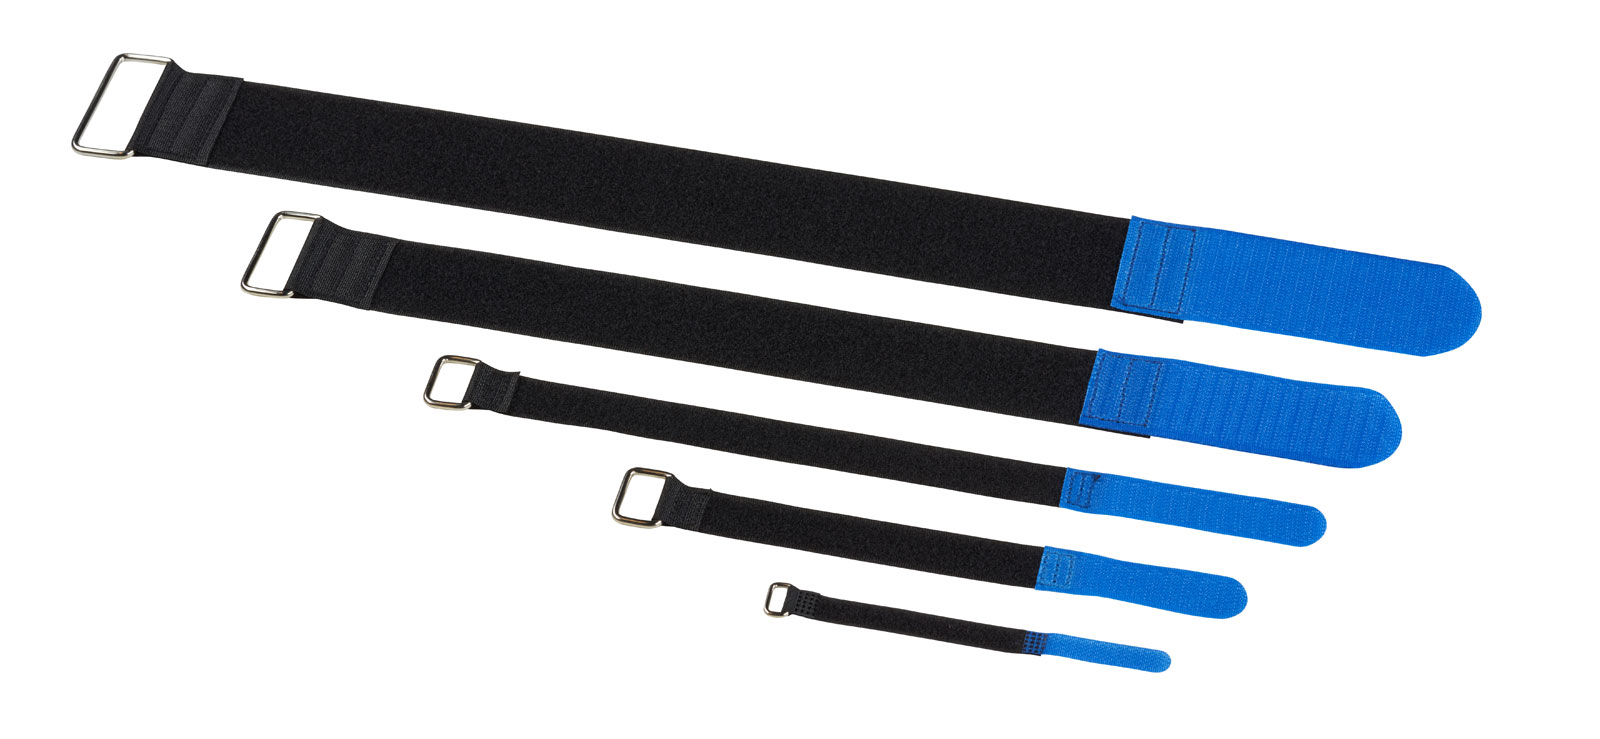 CABLE TIES CAB-TIE-200-BL